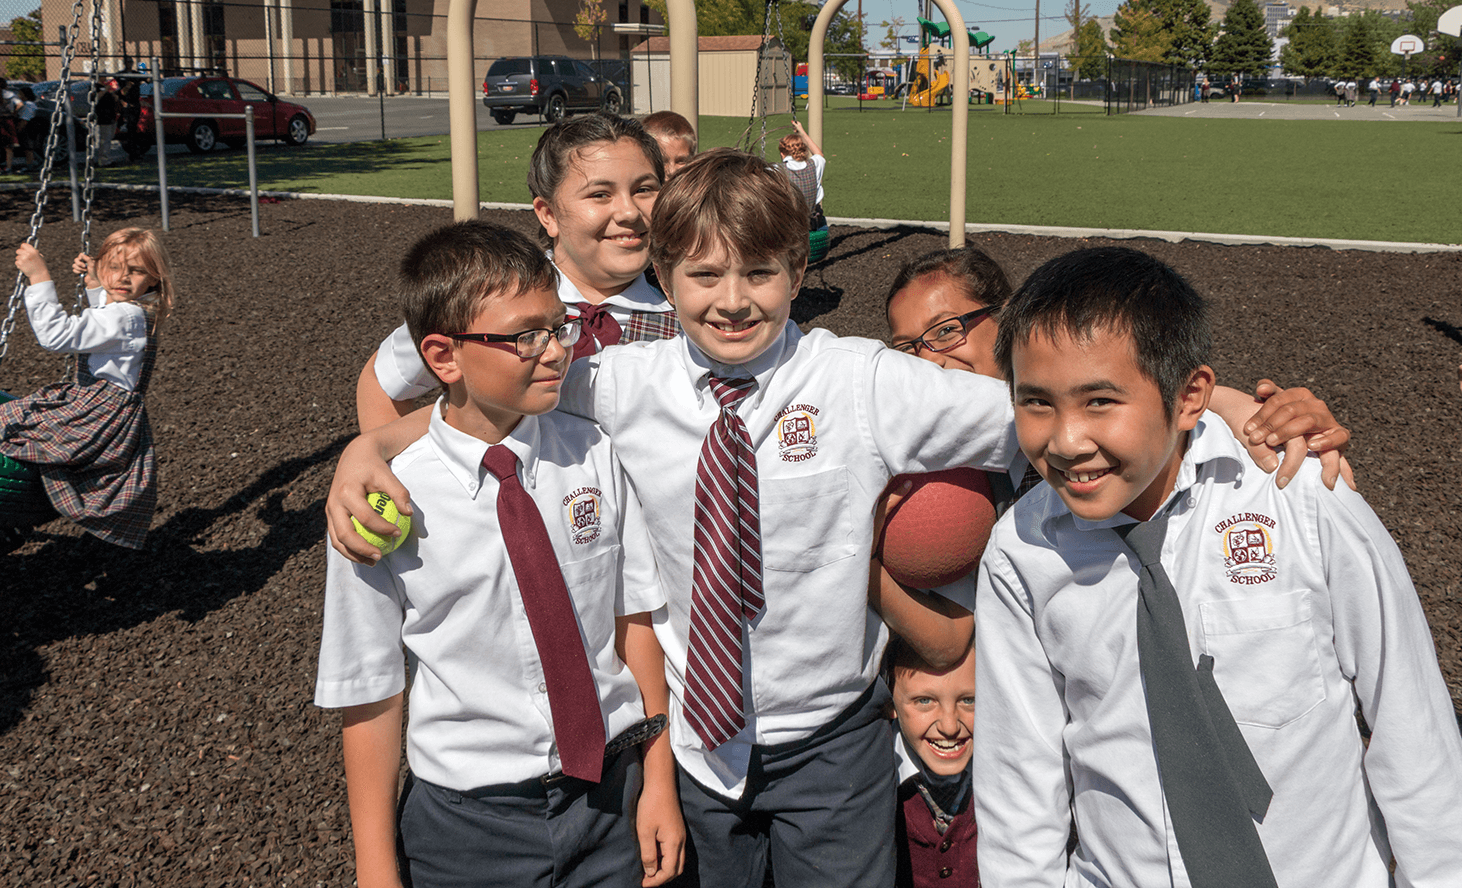 Elementary School Friends | Challenger School - Salt Lake | Private School In Salt Lake City, Utah